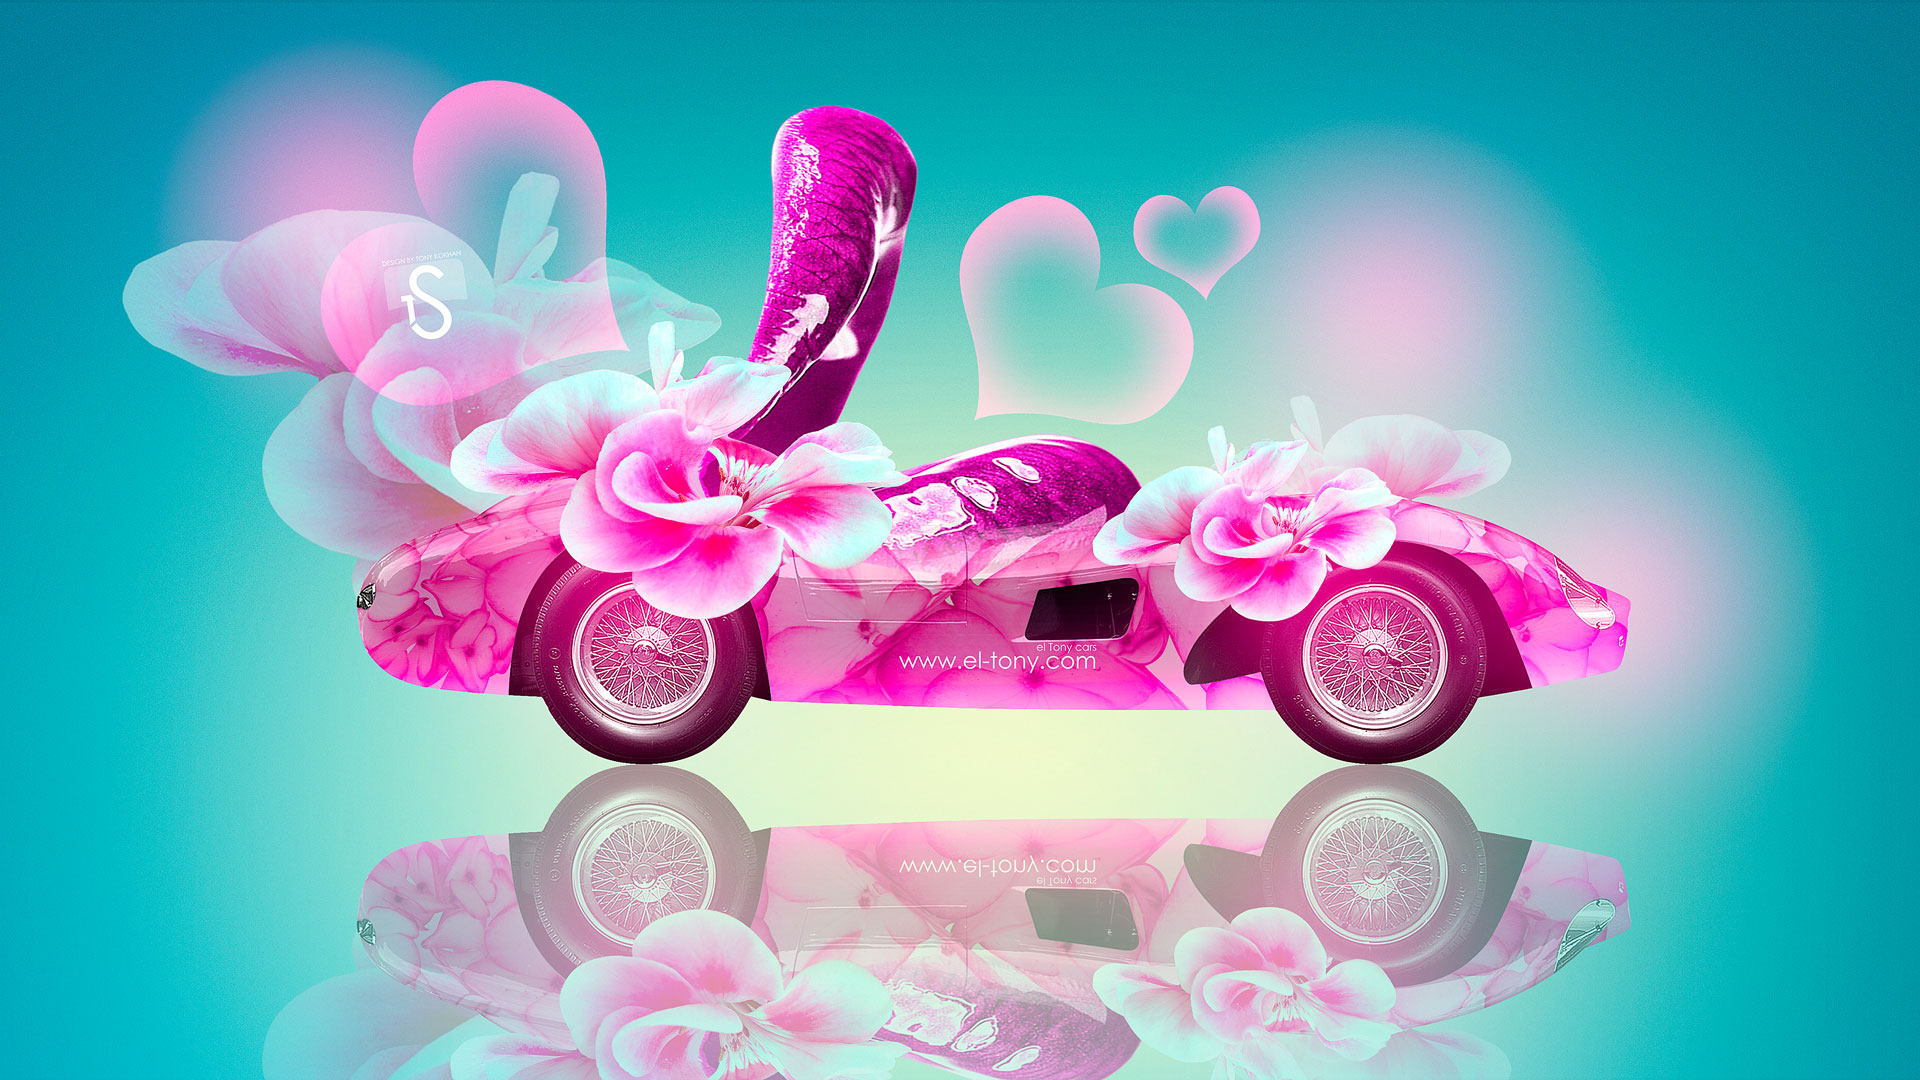 Bon Ferrari 500 Fantasy Lips Flowers Car 2014 Design